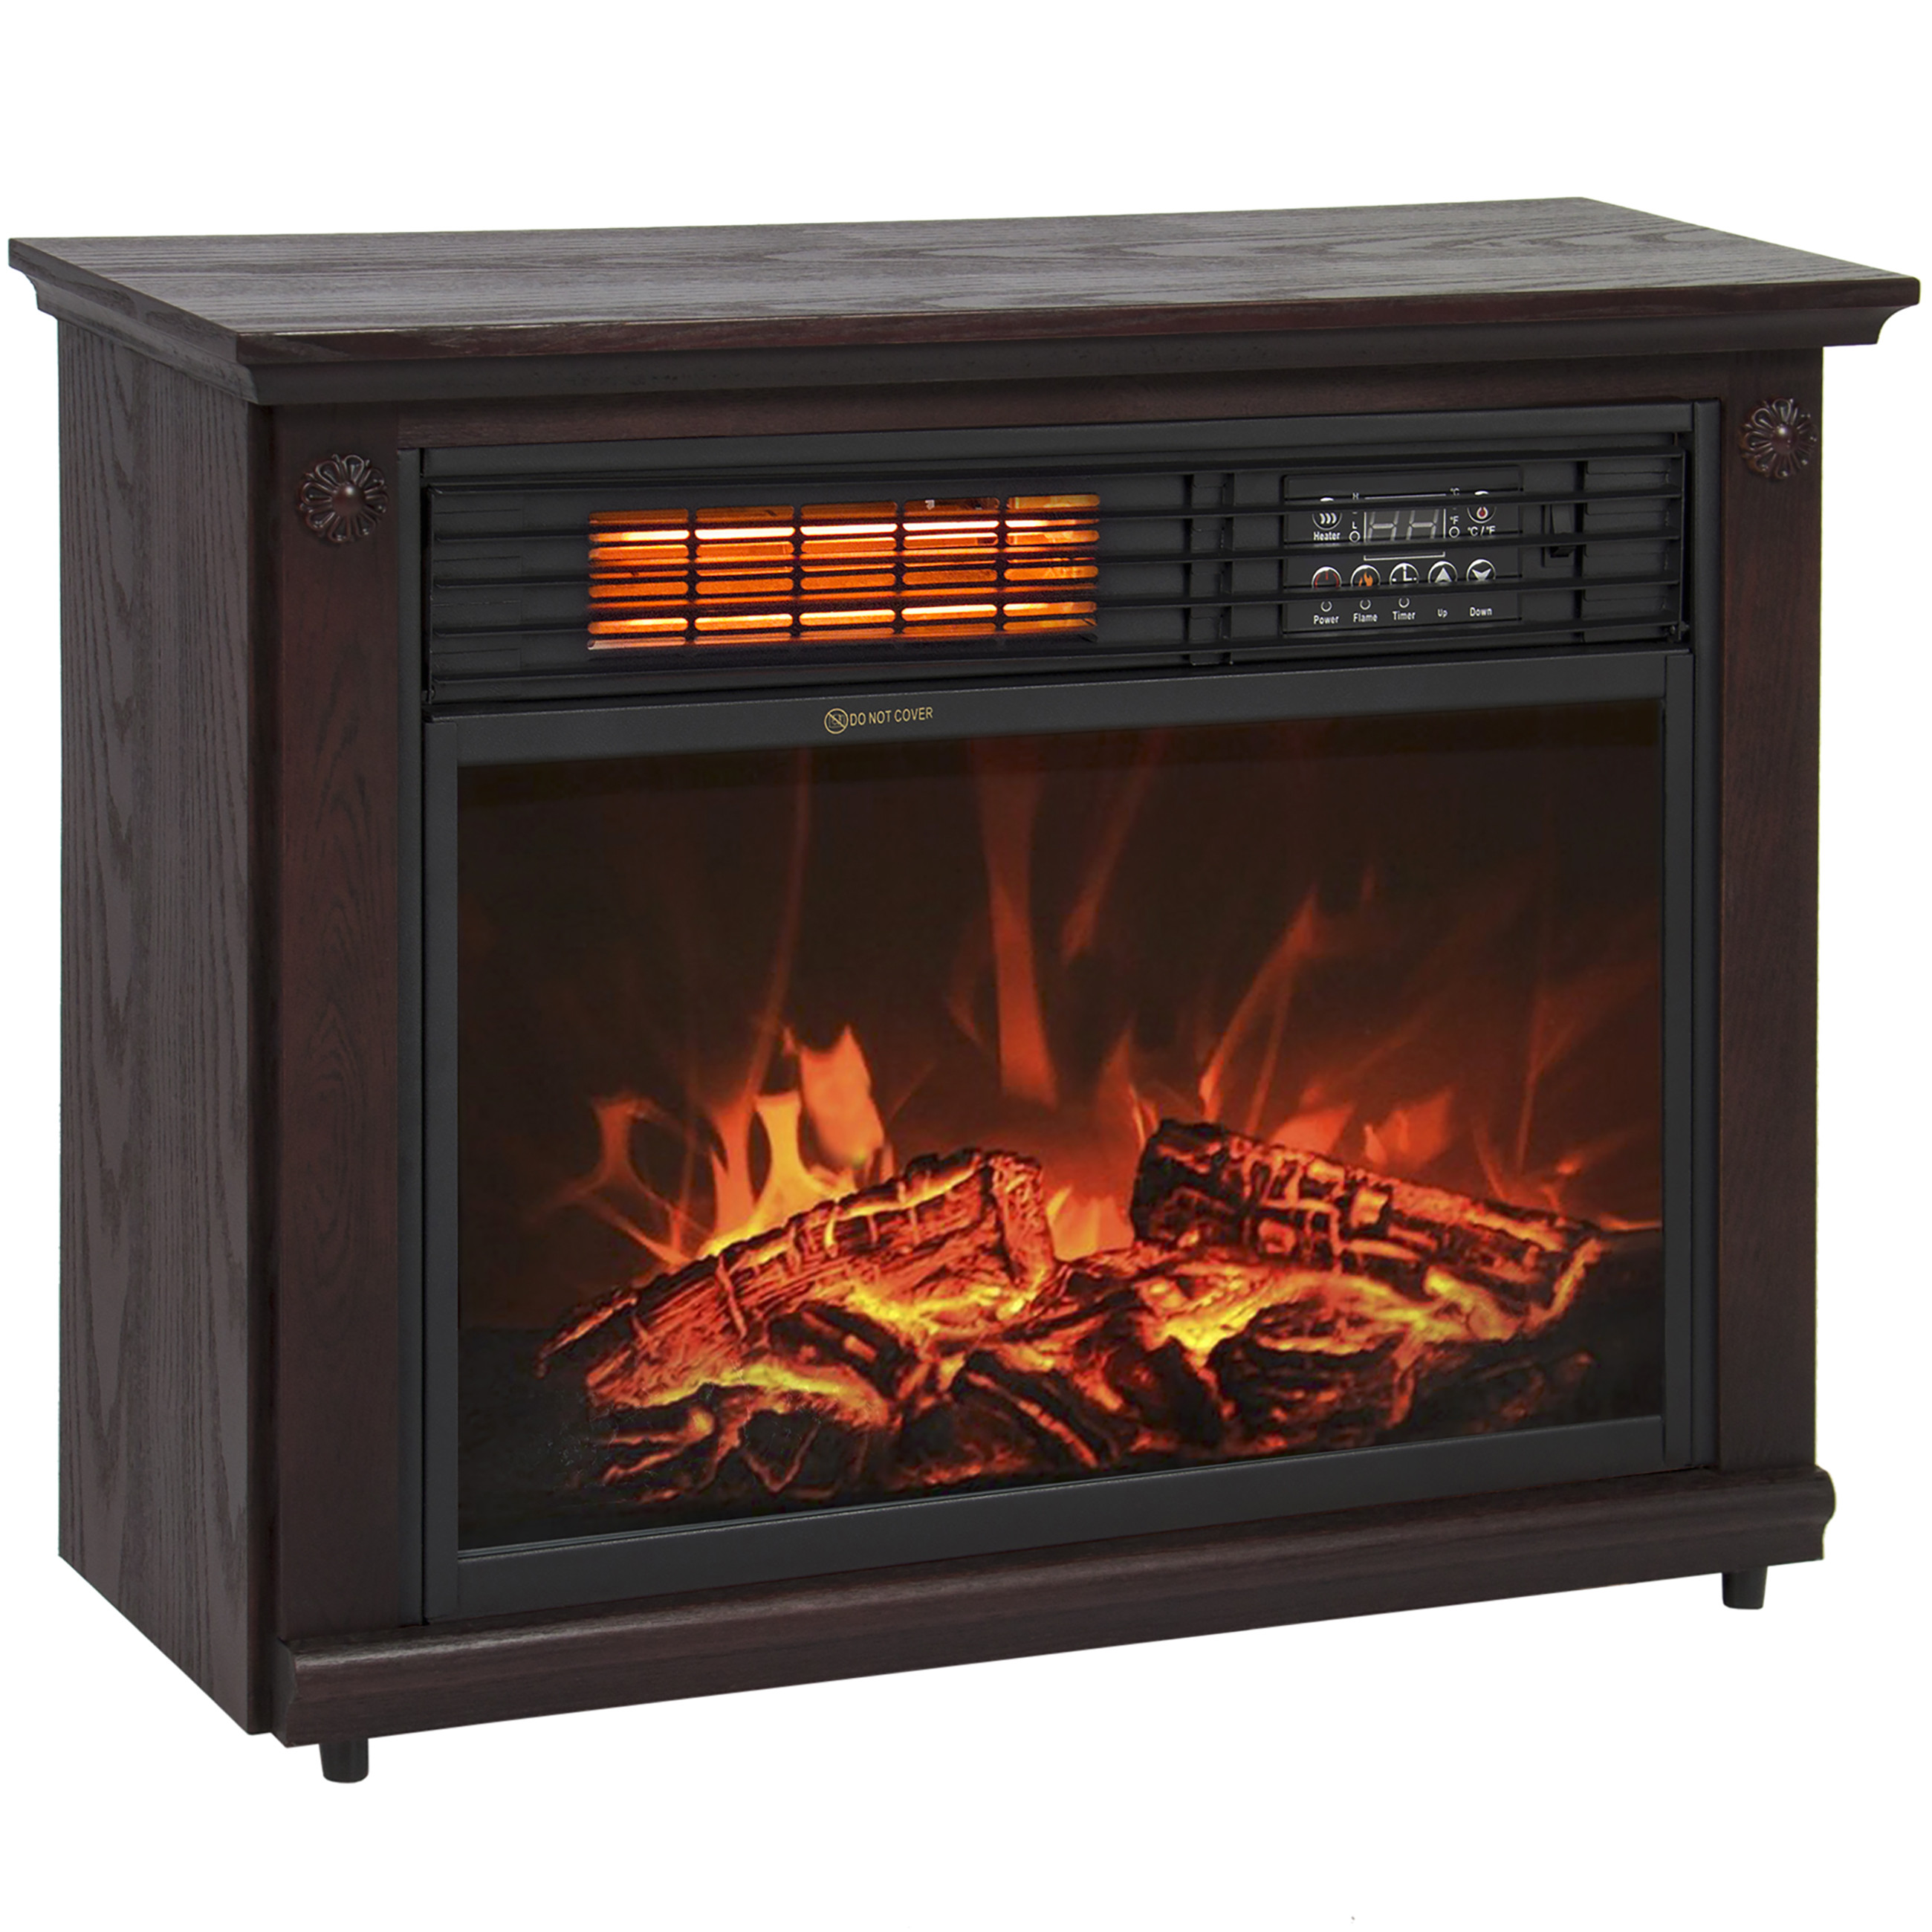 large room infrared quartz electric fireplace heater dark walnut finish w remote 0